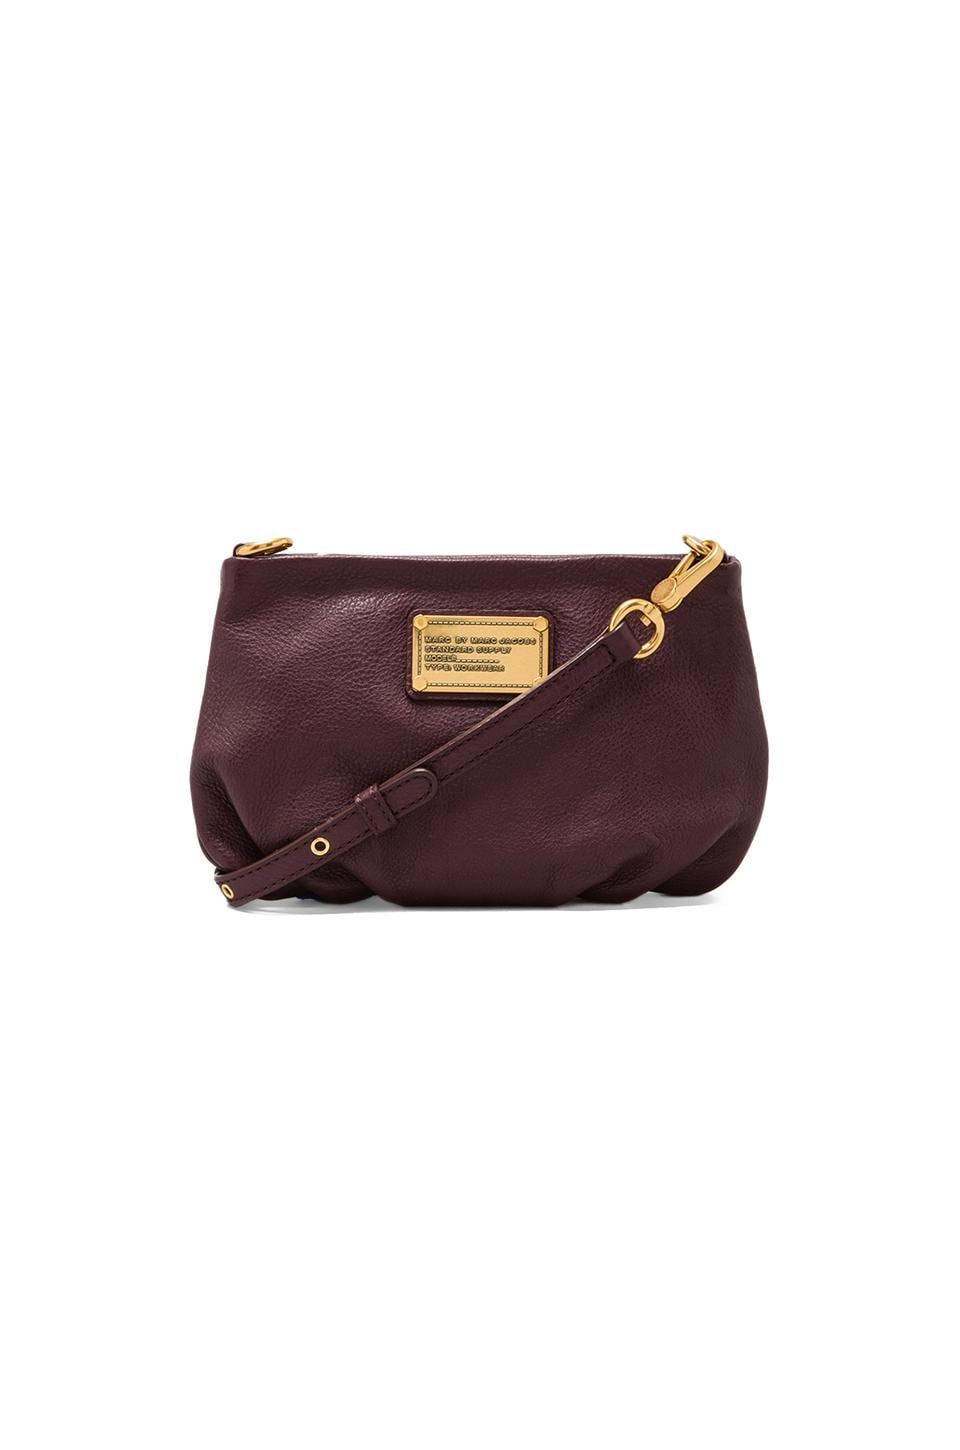 Marc by Marc Jacobs Classic Q Percy Crossbody Bag in Cardamom Brown